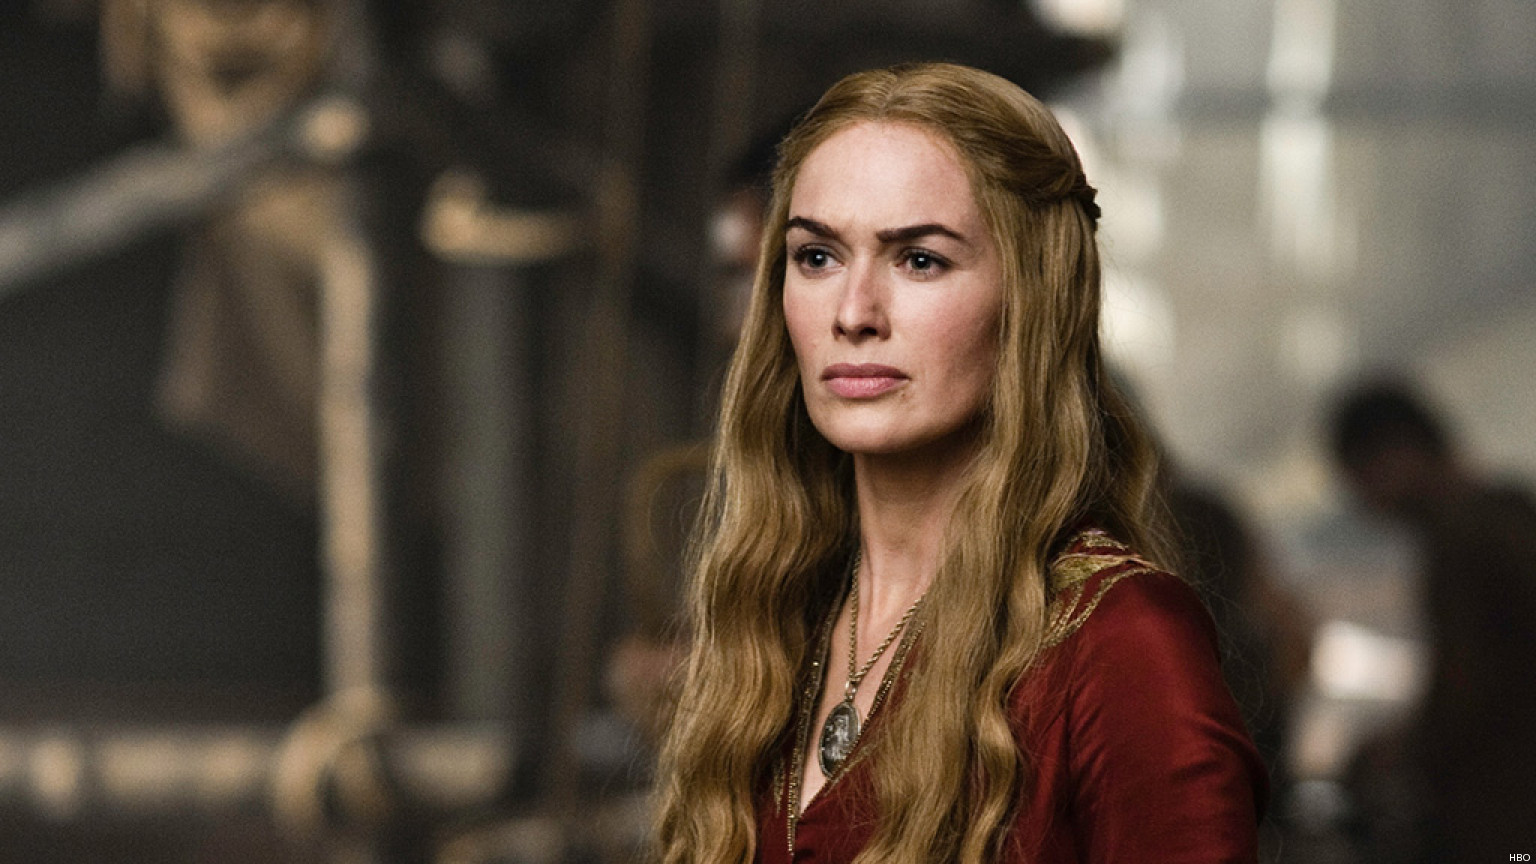 Cersei Lannister Is Getting Body Shamed For The Most Ridiculous Reason cersei1